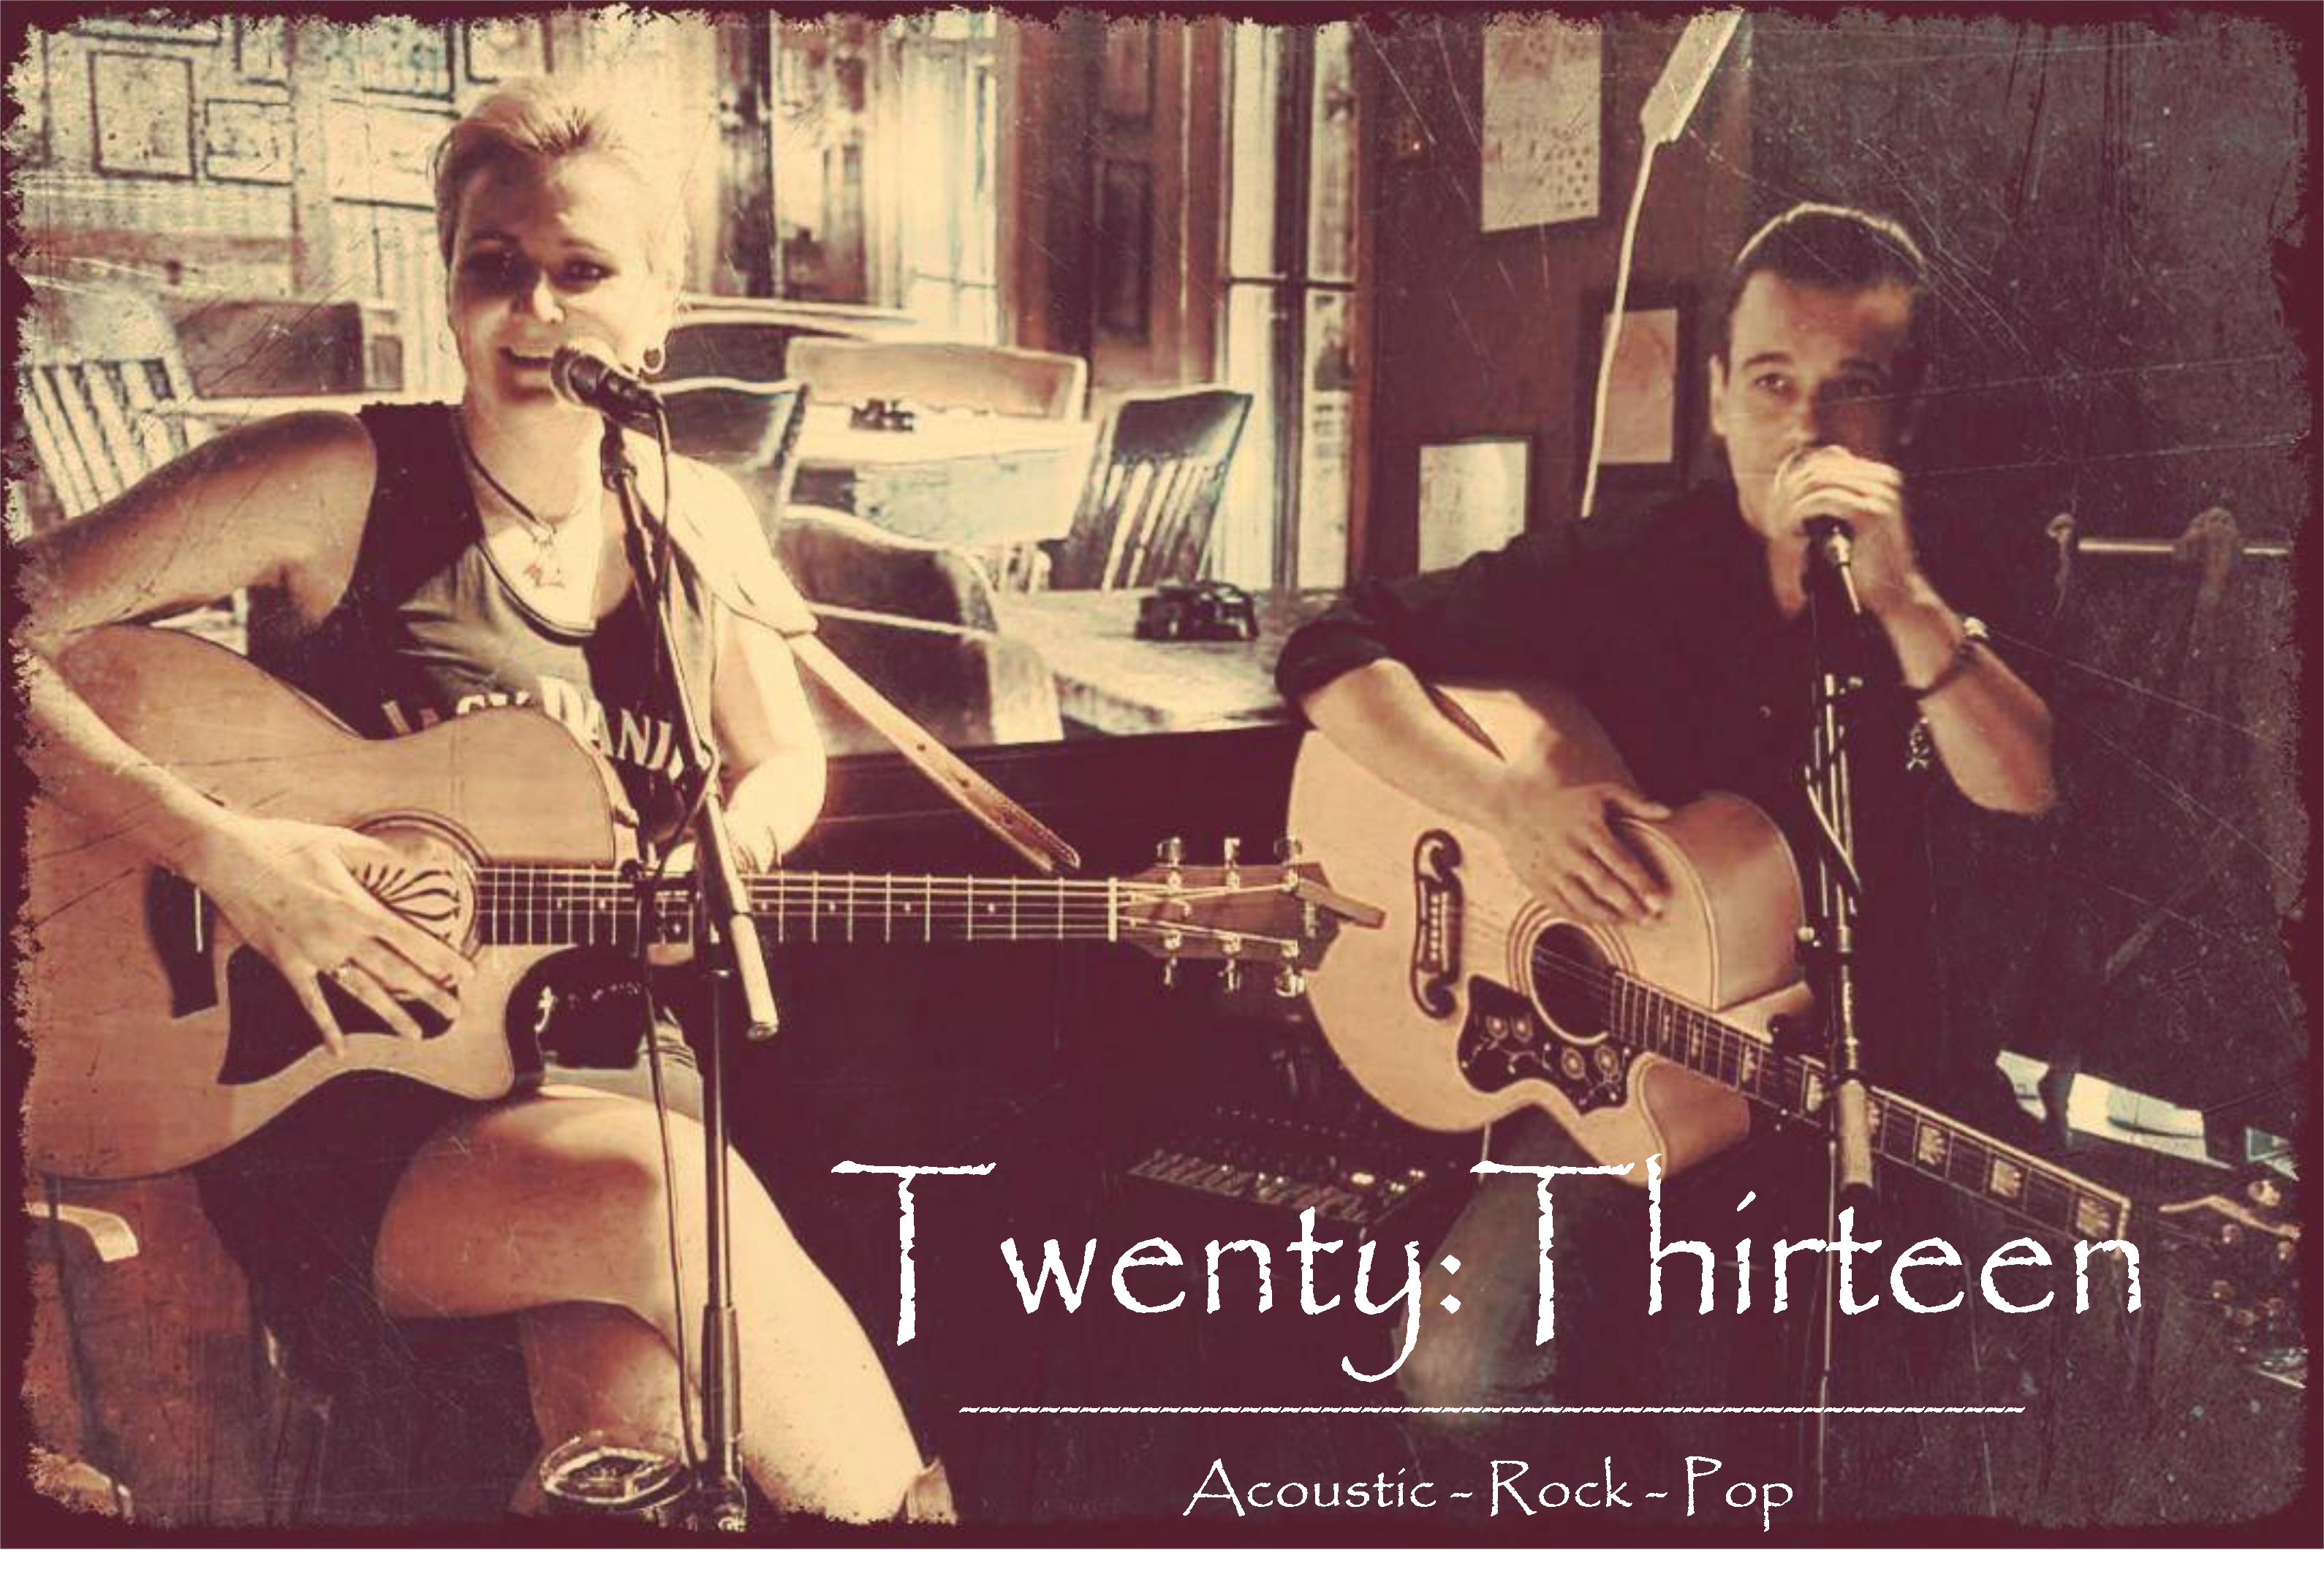 Twenty:Thirteen, Akustik, Duo, Cover-Songs, Personal Jesus-Version, Berlin, Musiktipp, Newcomer, Band, Musik, Musiker, Gitarre